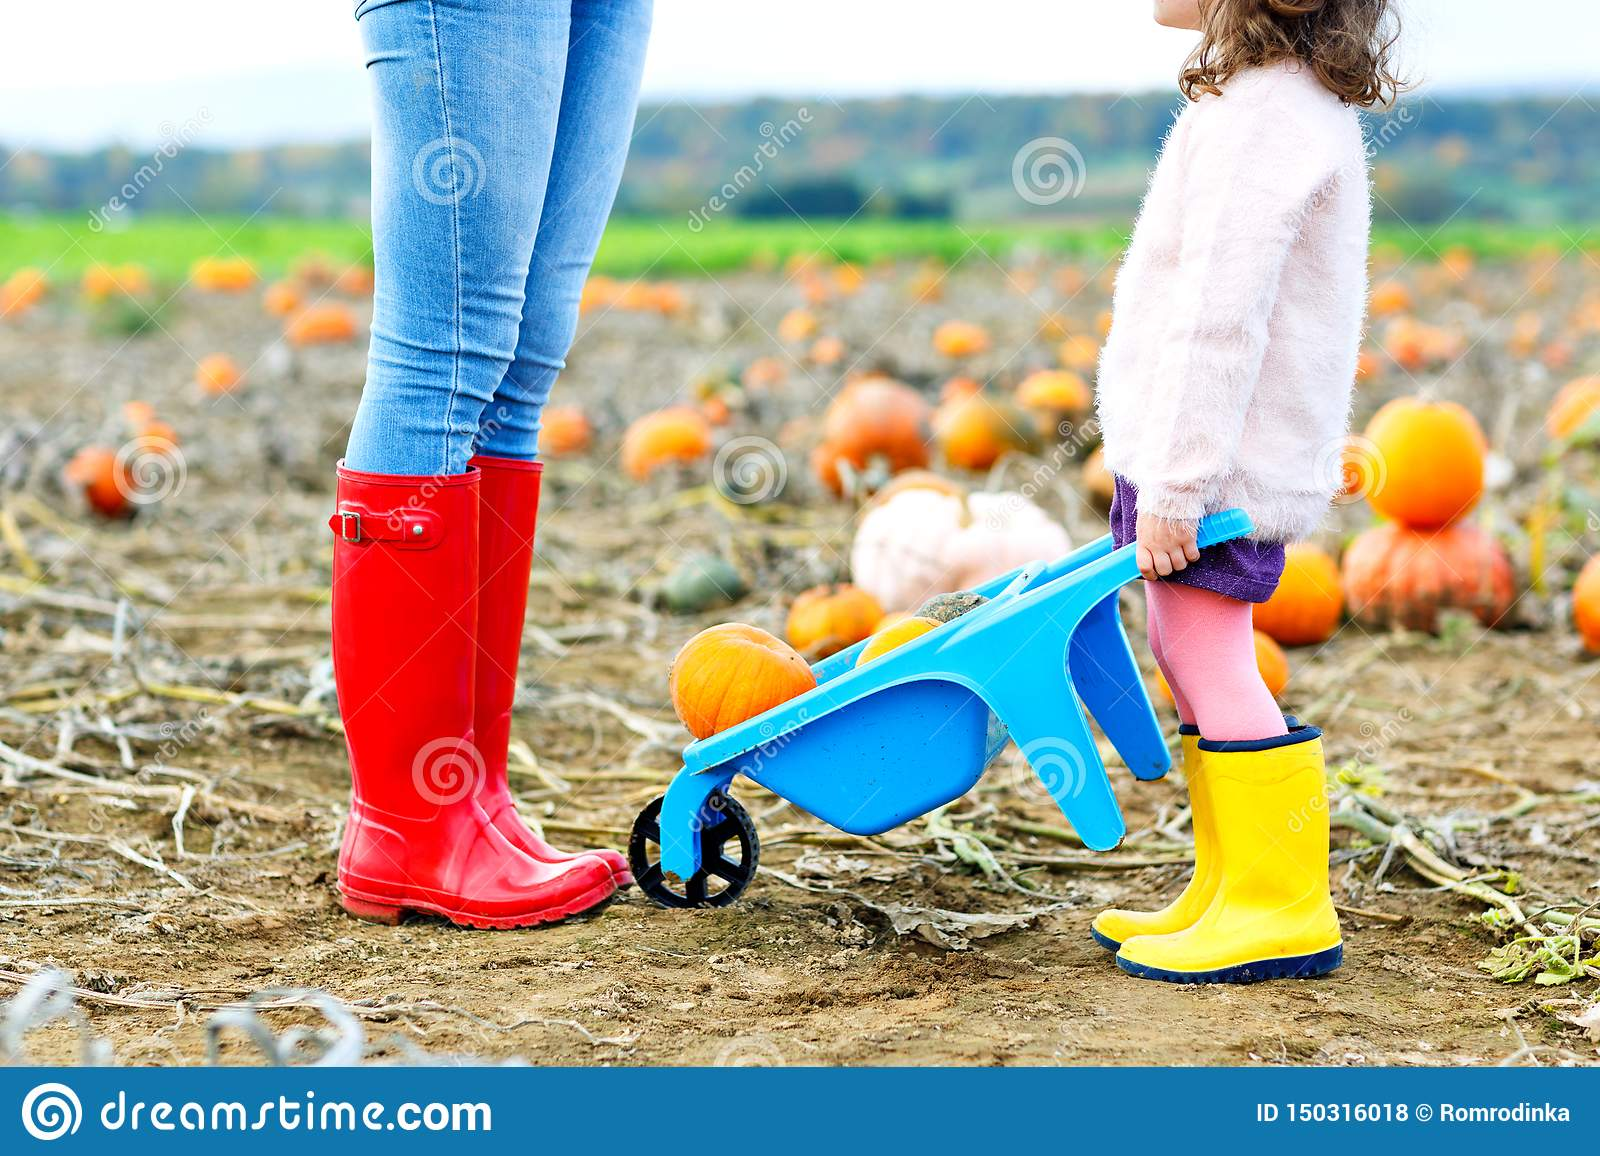 Legs of young woman and her little kid girl daugher in rainboots. Woman in red gum boots, child in yellow shoes. On